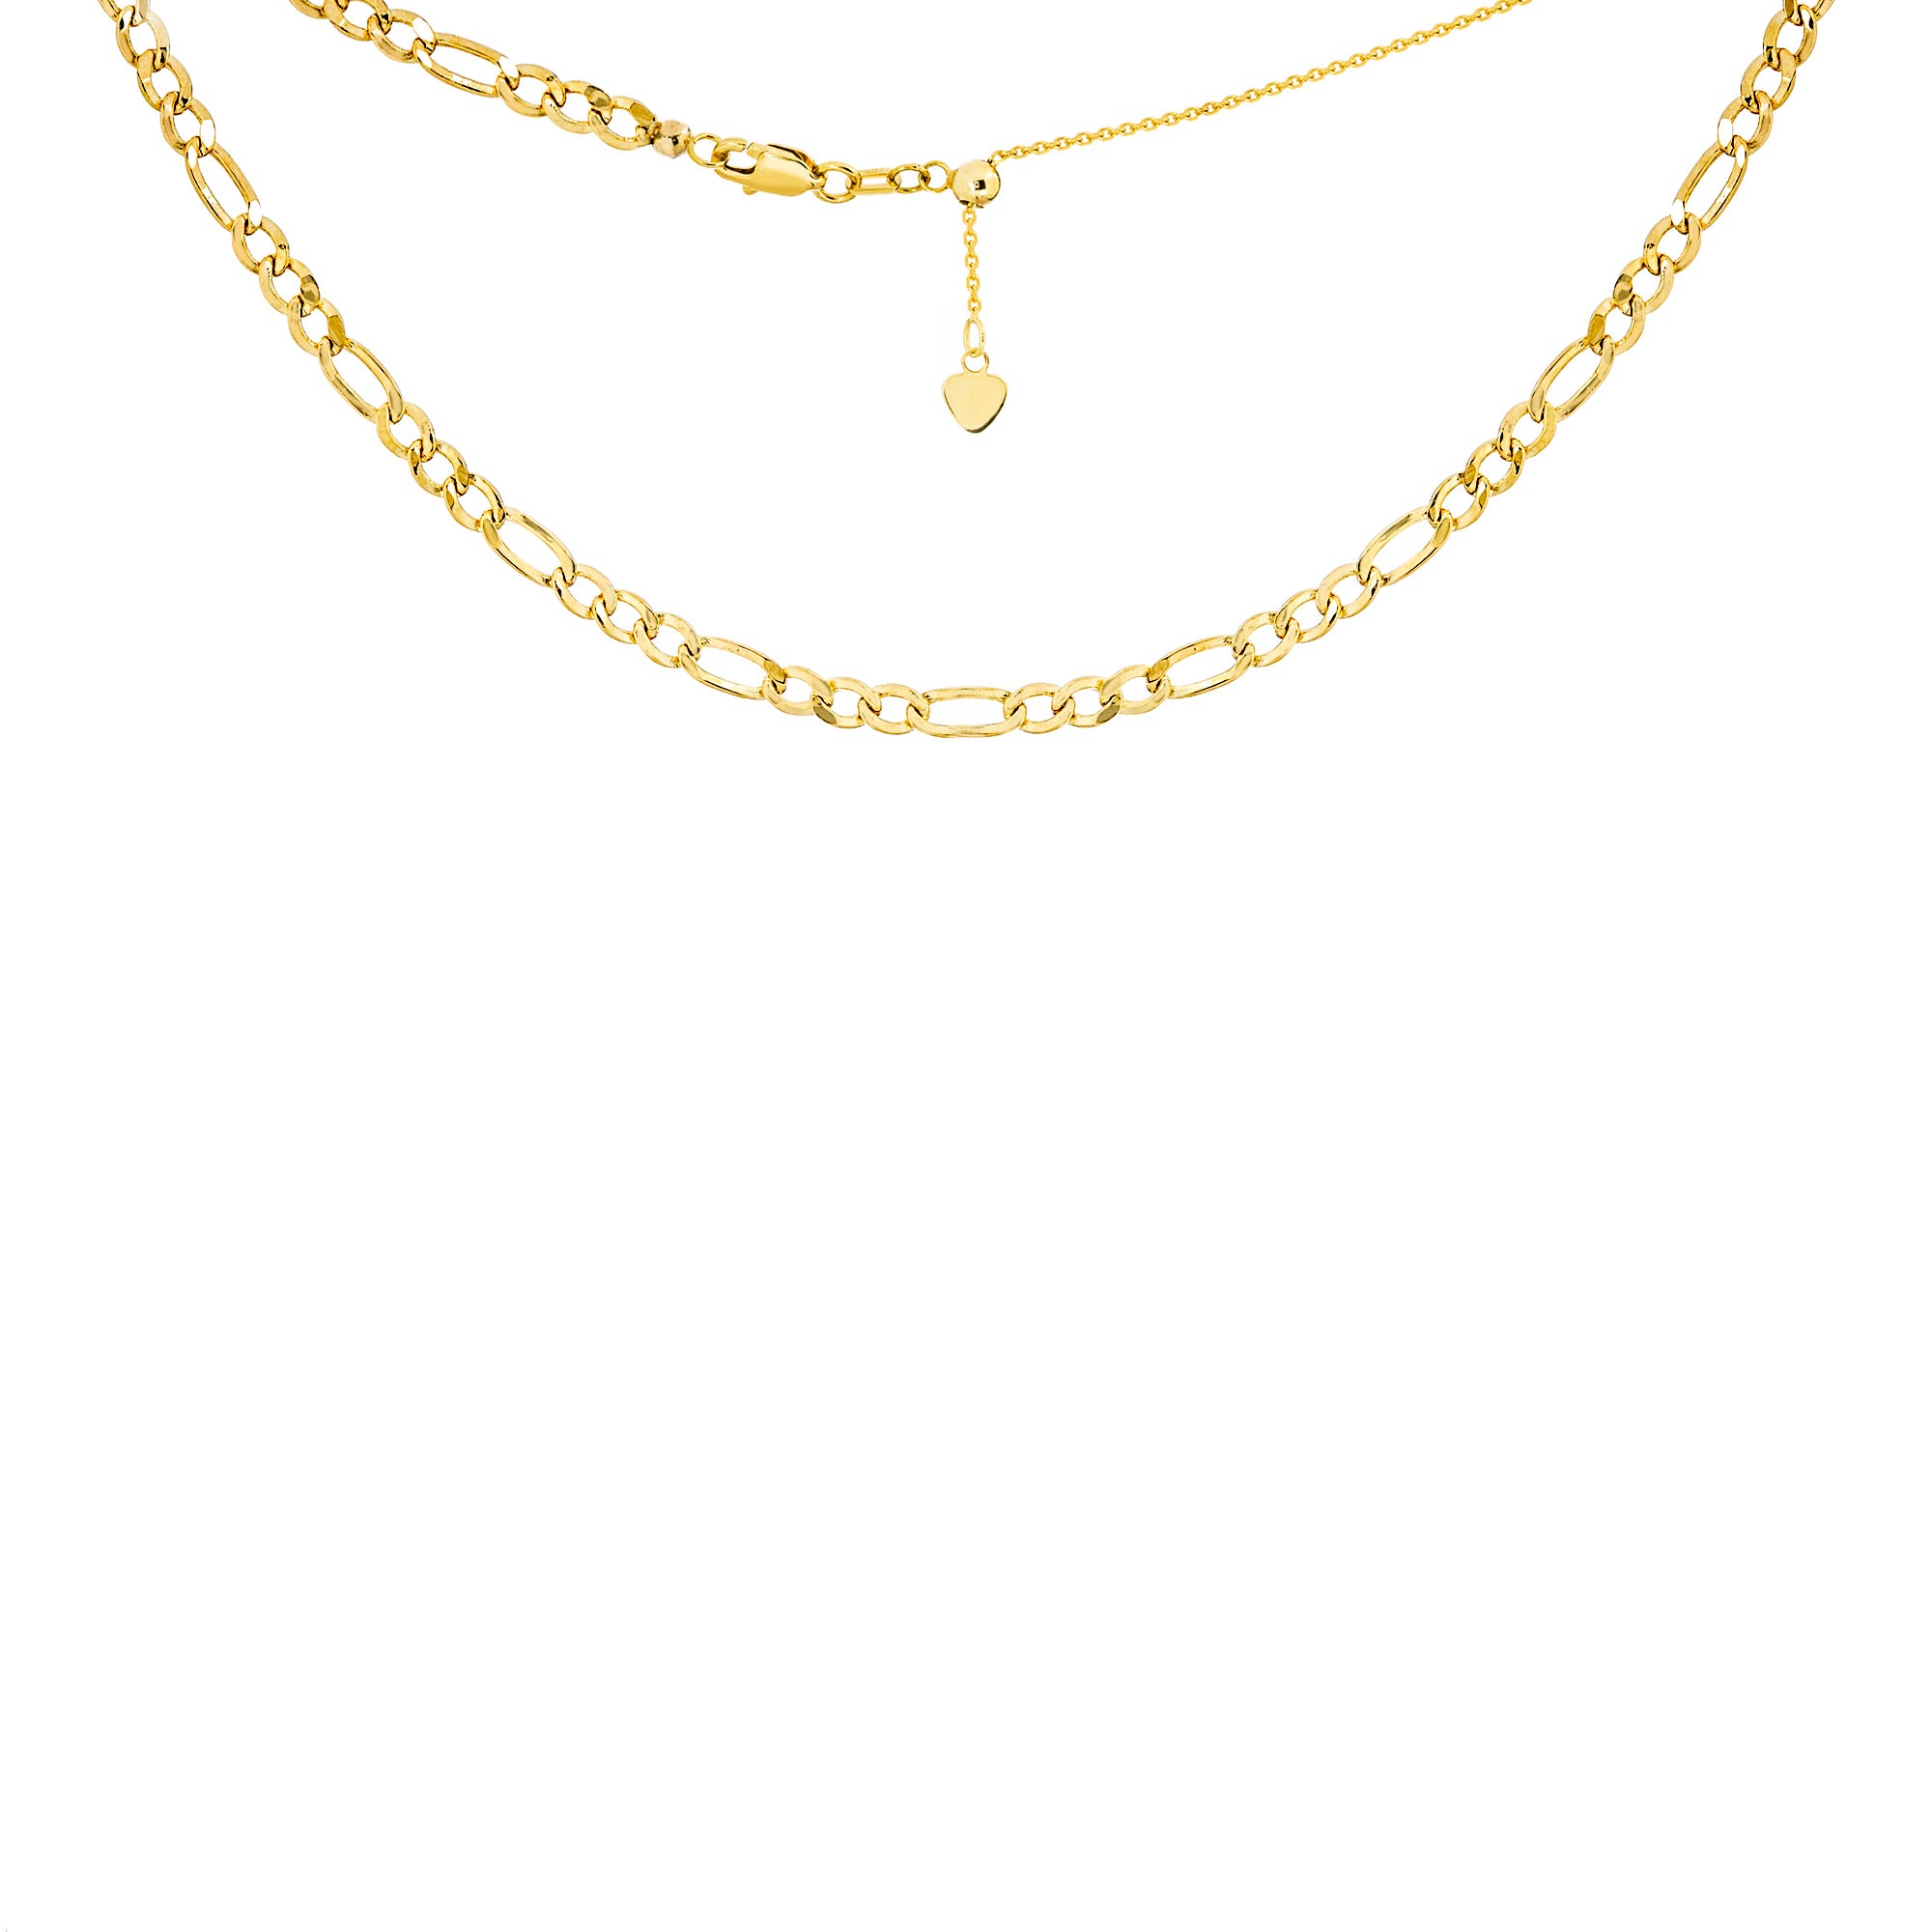 Ladies Figaro Choker Adjustable Necklace in 14k Yellow Gold